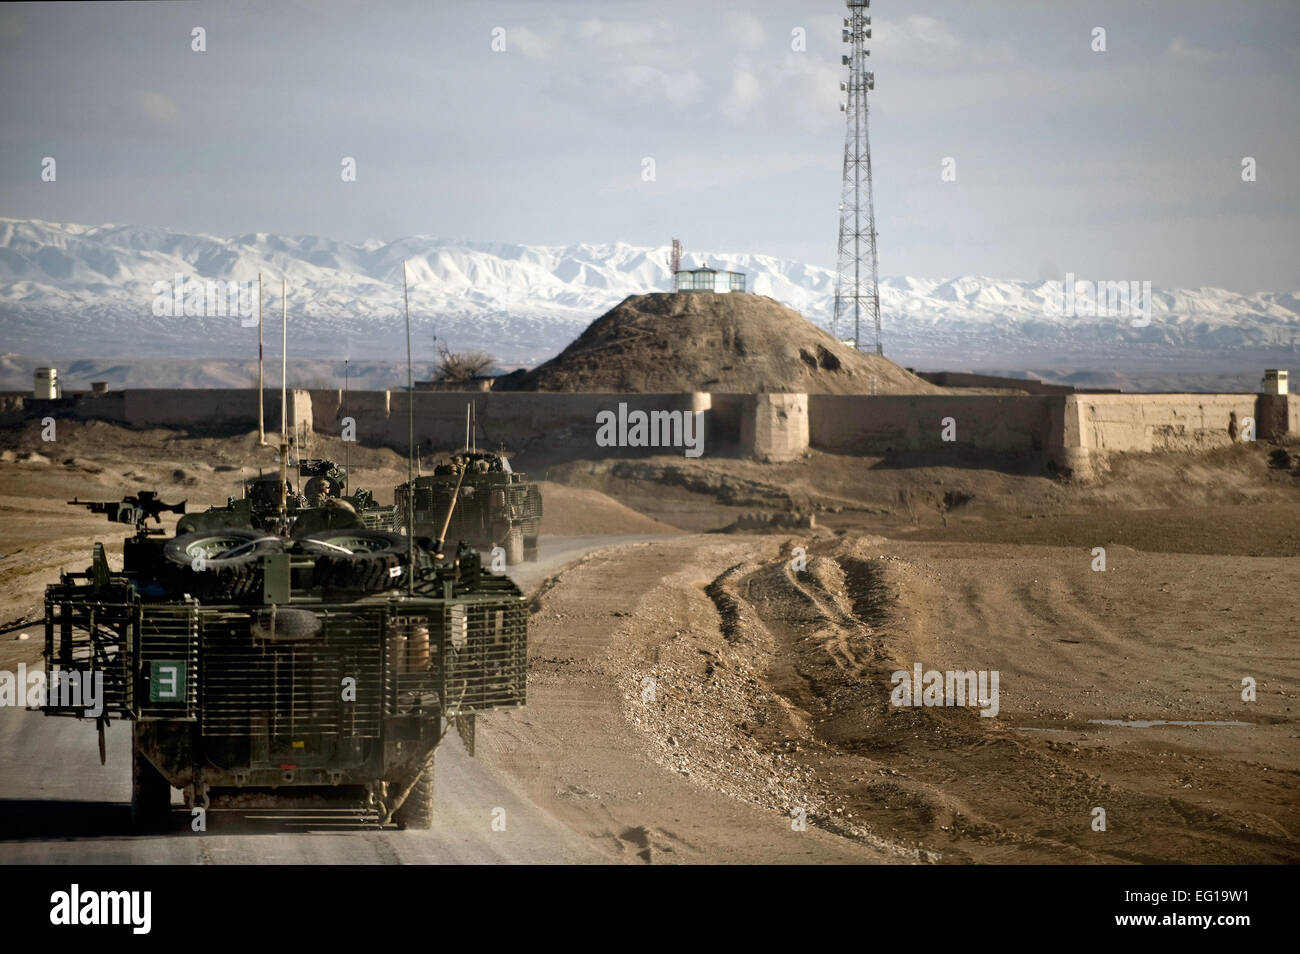 Members of a U.S. Army task force depart a dirt landing zone after securing the surrounding area in the Zabul province Stock Photo